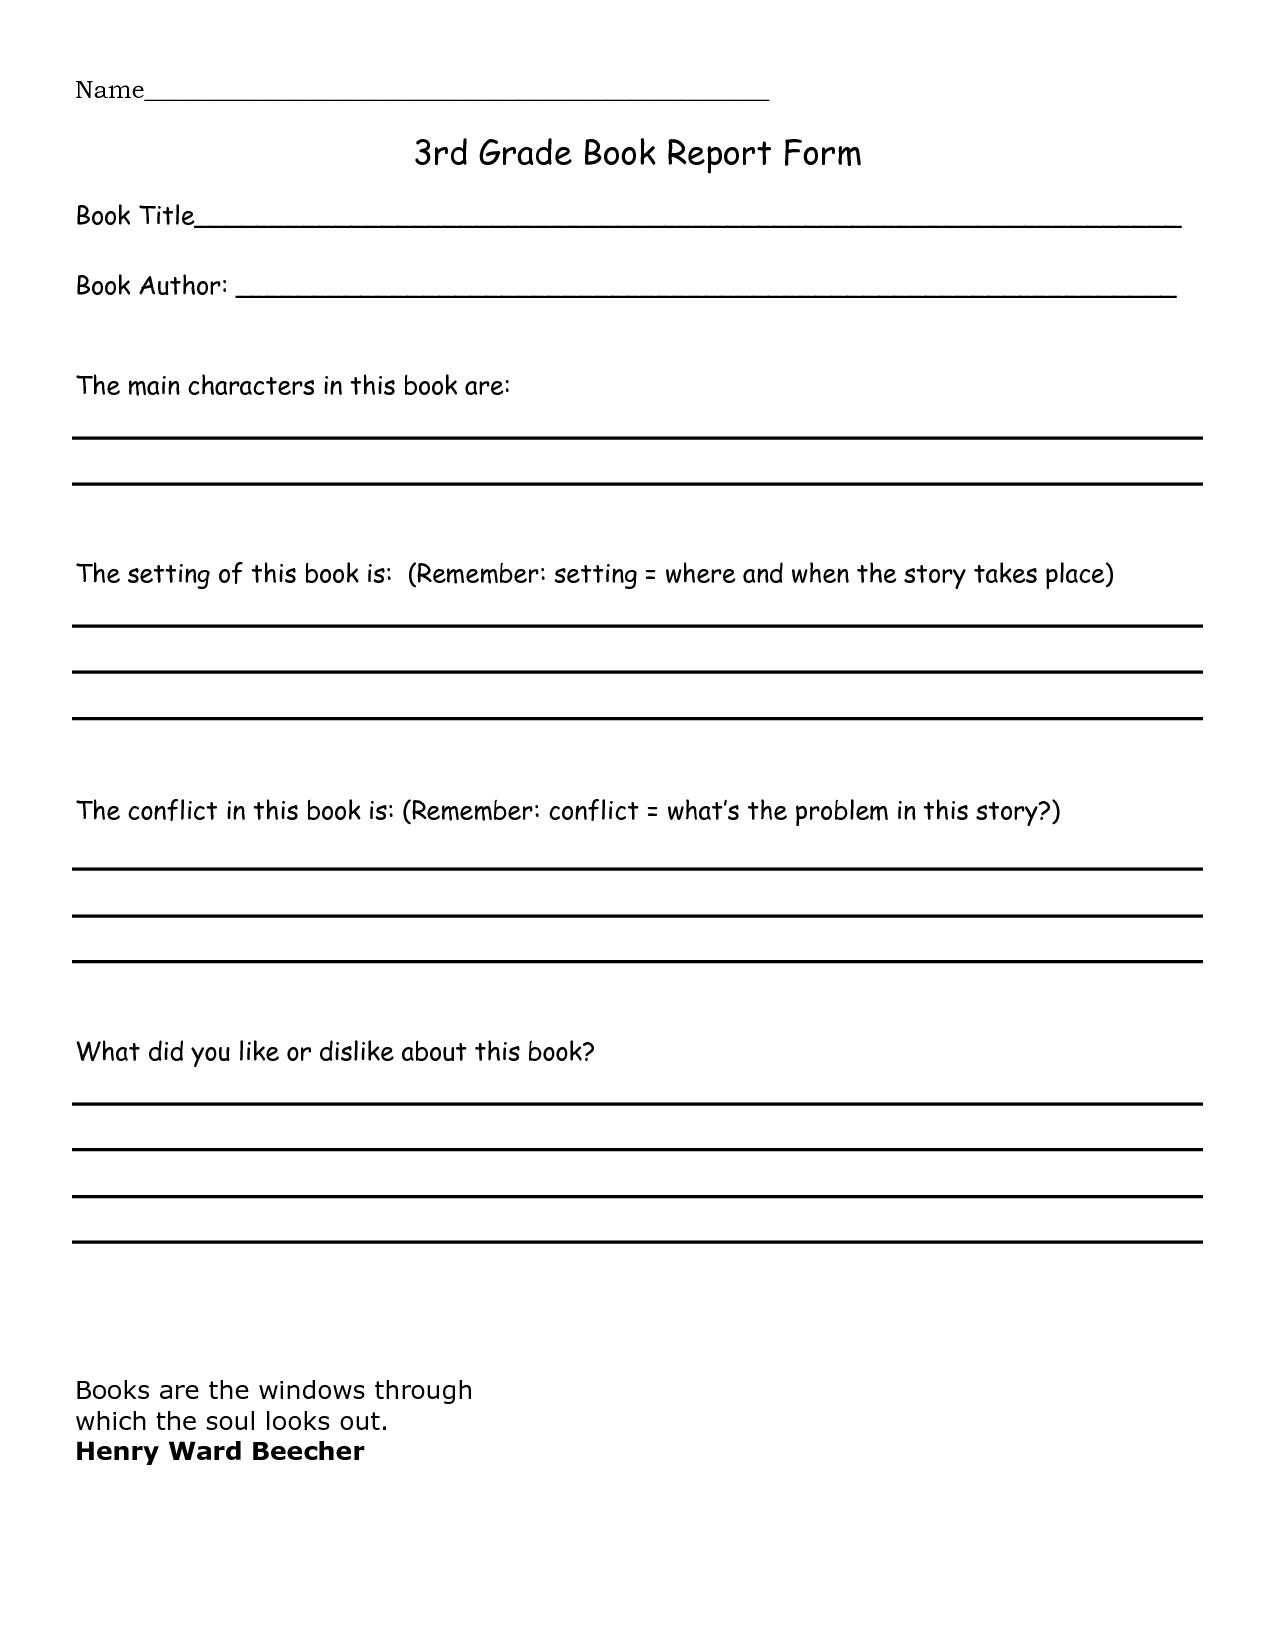 Pin by Katie Jane on Home Education   Book report templates [ 1650 x 1275 Pixel ]